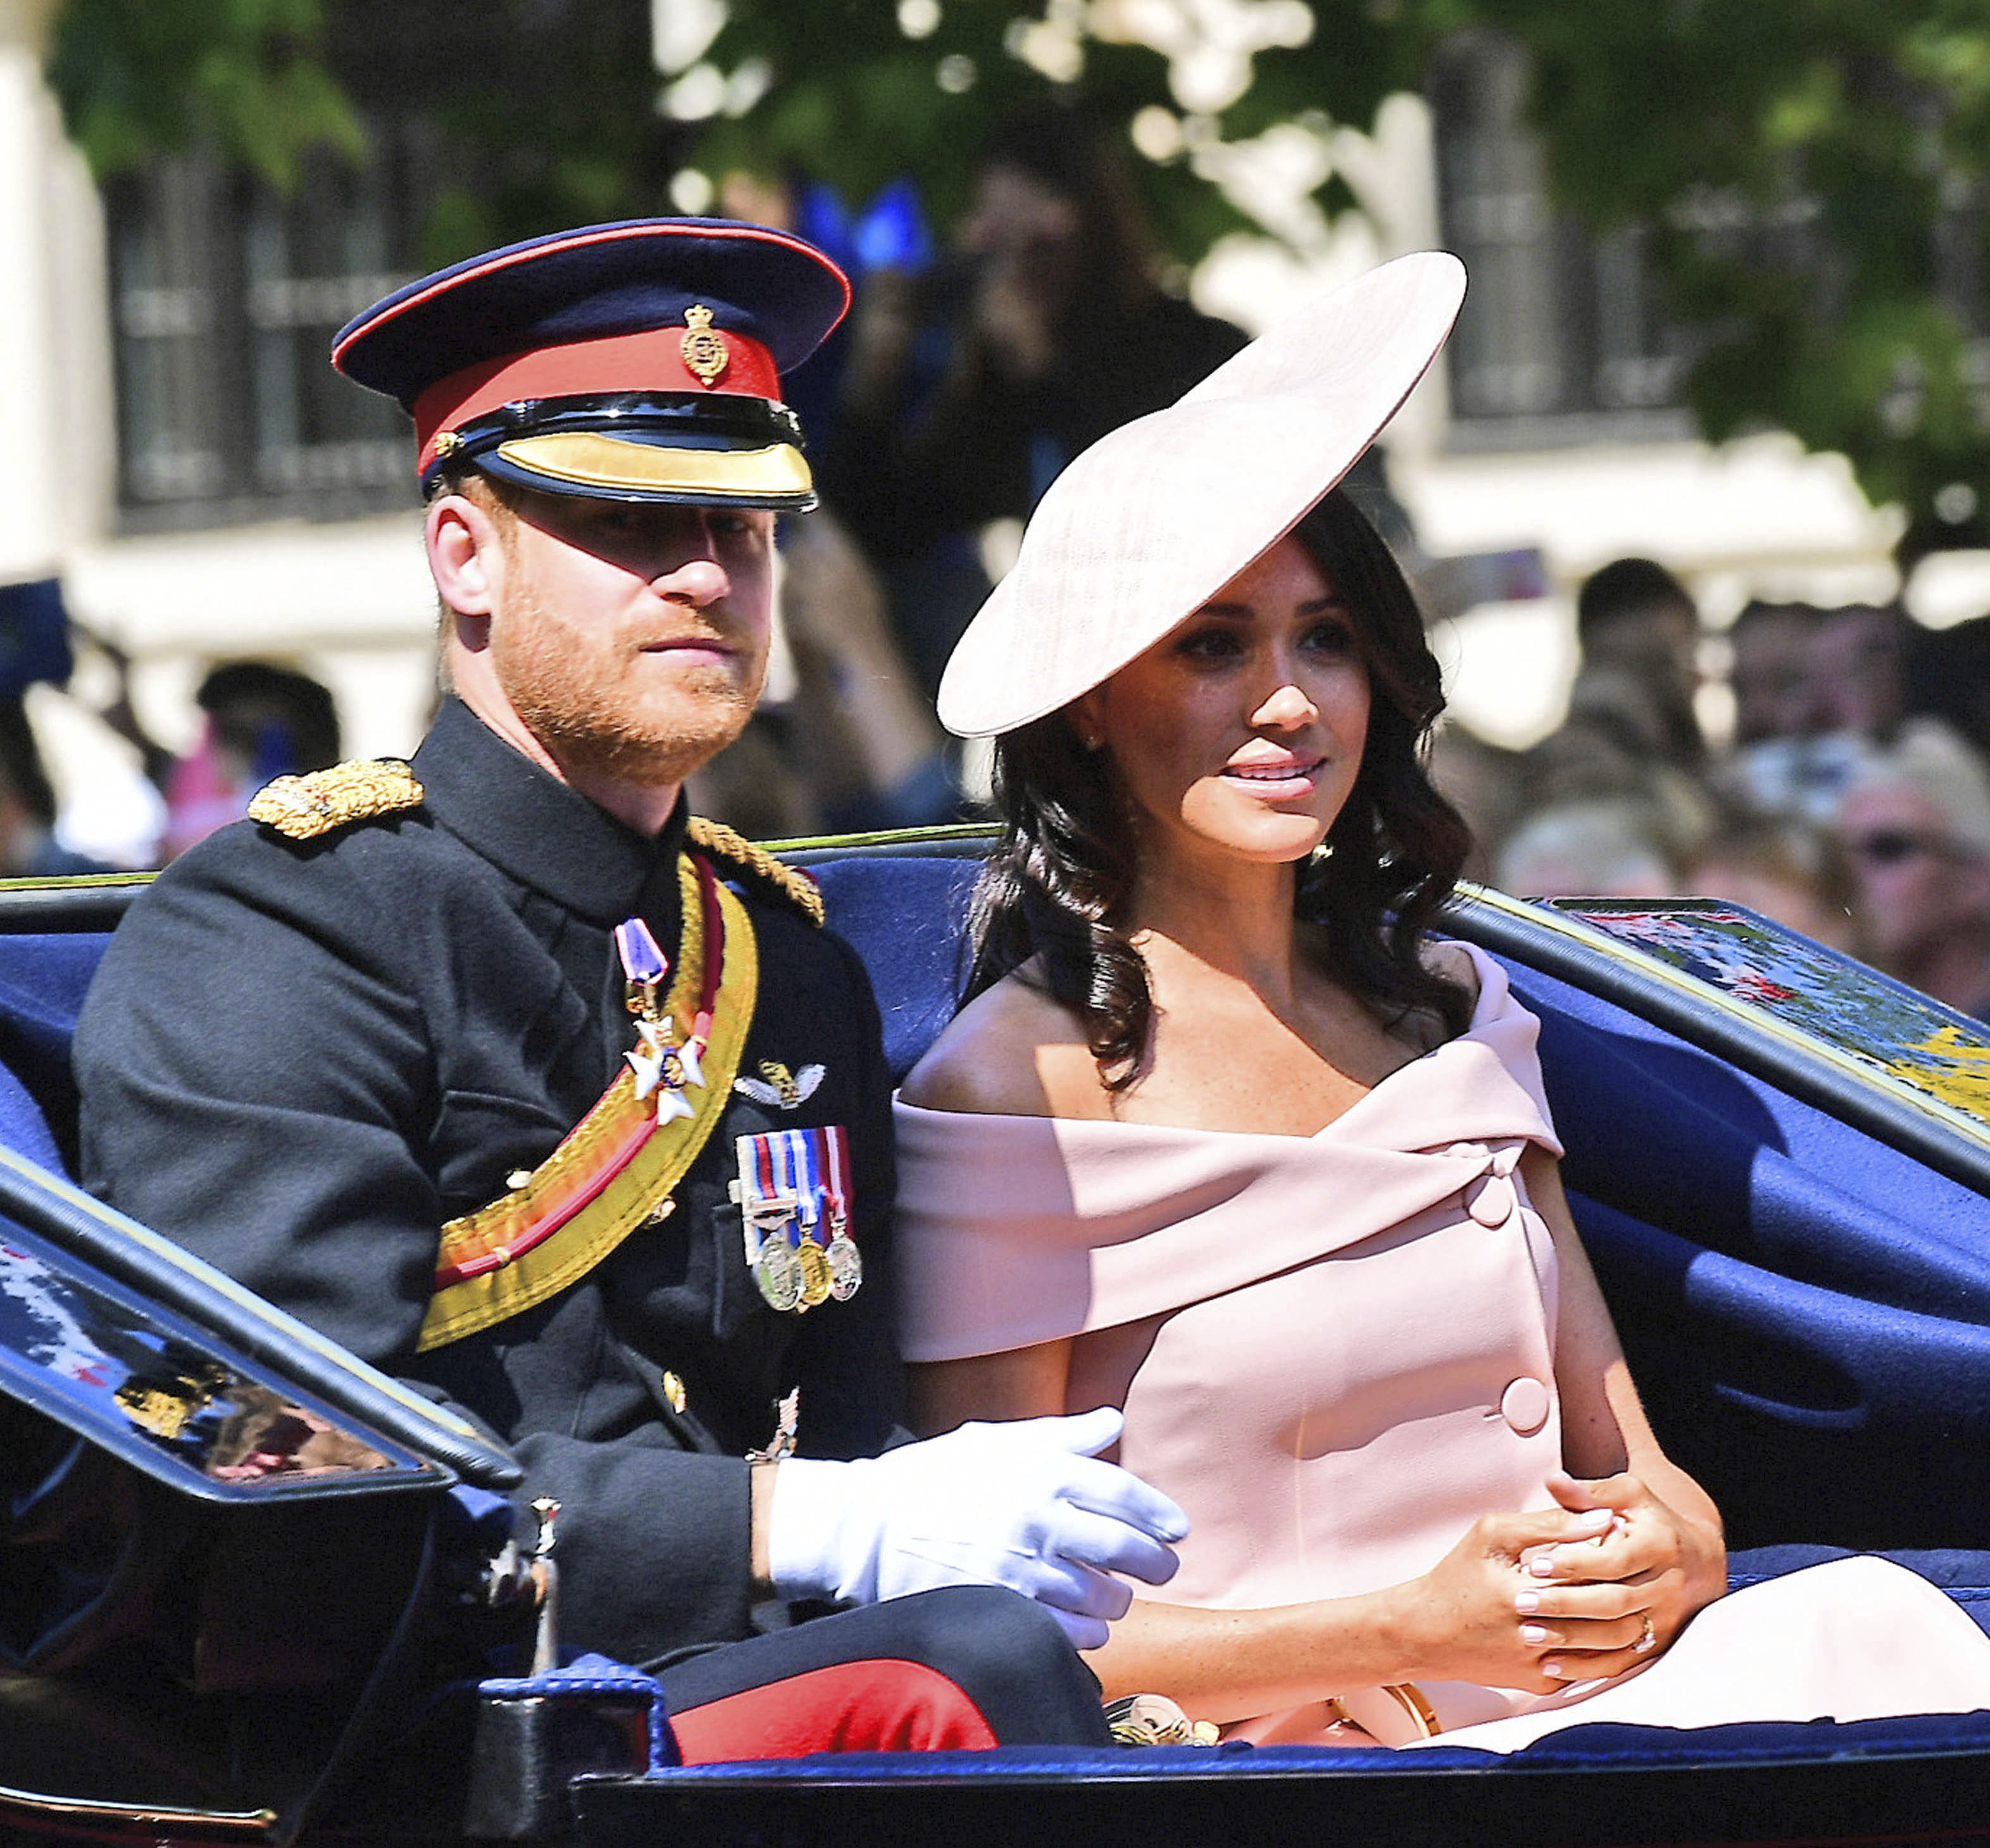 """February 20th 2020 - Prince Harry and Duchess Meghan will formally step down as senior royals on March 31st 2020 as the agreement reached between Queen Elizabeth II and the couple becomes official. - January 20th 2020 - Buckingham Palace has announced that Prince Harry and Duchess Meghan will no longer use """"royal highness"""" titles and will not receive public money for their royal duties. Additionally, as part of the terms of surrendering their royal responsibilities, Harry and Meghan will repay the $3.1 million cost of taxpayers' money that was spent renovating Frogmore Cottage - their home near Windsor Castle. - January 9th 2020 - Prince Harry The Duke of Sussex and Duchess Meghan of Sussex intend to step back their duties and responsibilities as senior members of the British Royal Family. - File Photo by: zz/KGC-160/STAR MAX/IPx 2018 6/9/18 Prince Harry The Duke of Sussex, The Duchess of Sussex and members of The Royal Family at the Trooping The Colour ceremonies as The Queen marks her official birthday - including an inspection of the troops from the Household Division, the Horseguards Parade March in Whitehall and watching a fly-past from the balcony at Buckingham Palace. (London, England, UK)"""